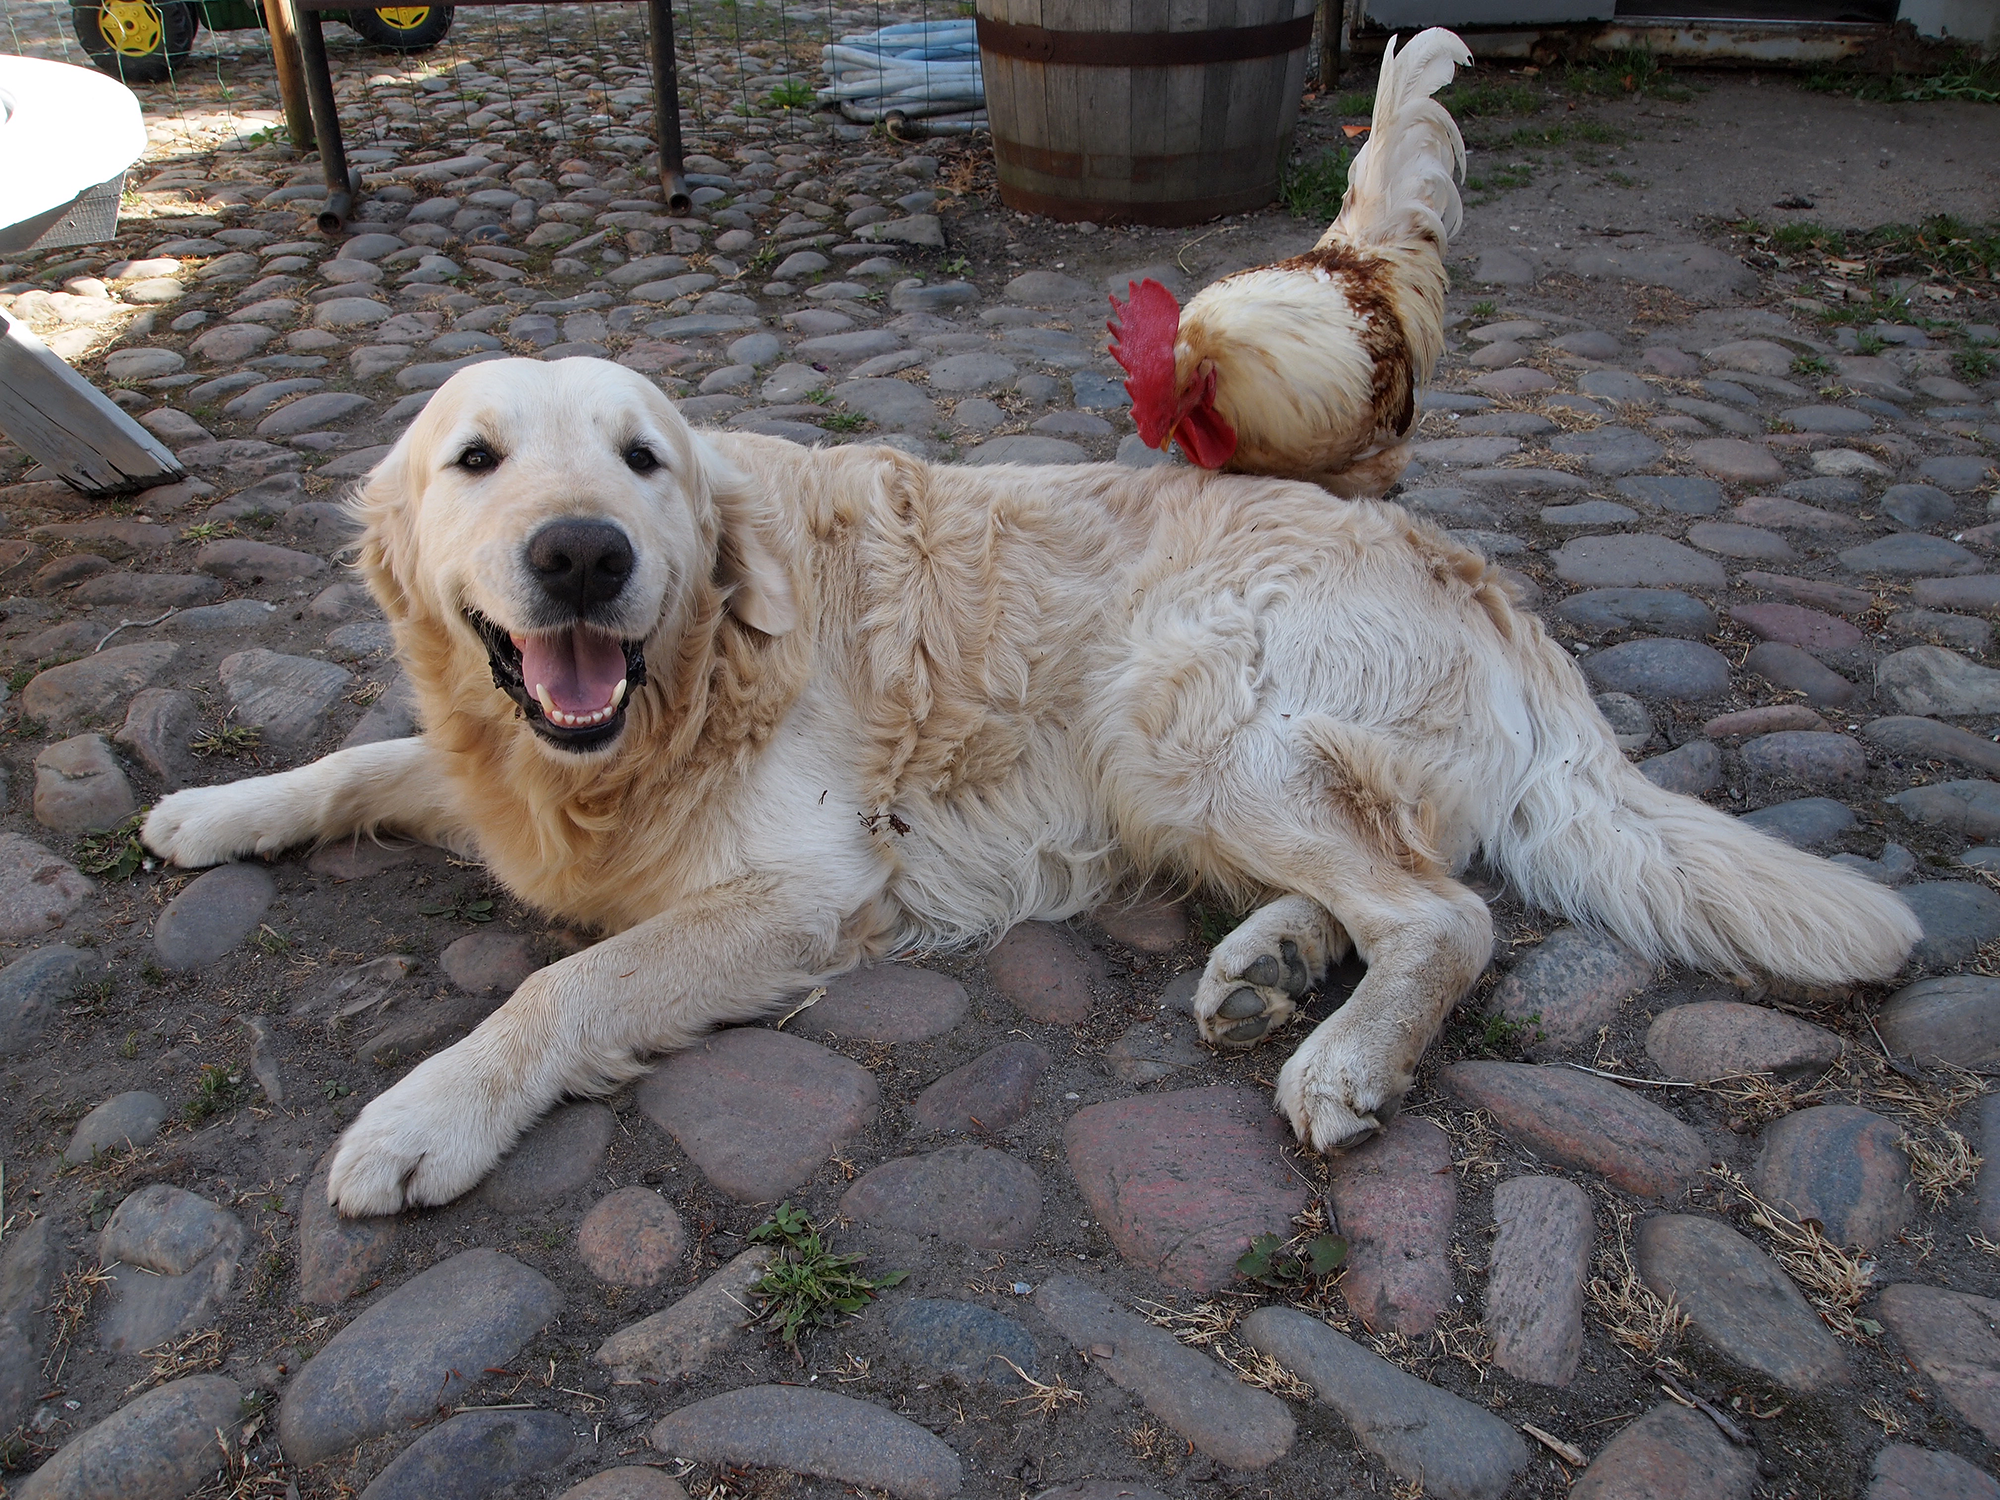 NEWLUCK Golden Retriever hanhunde